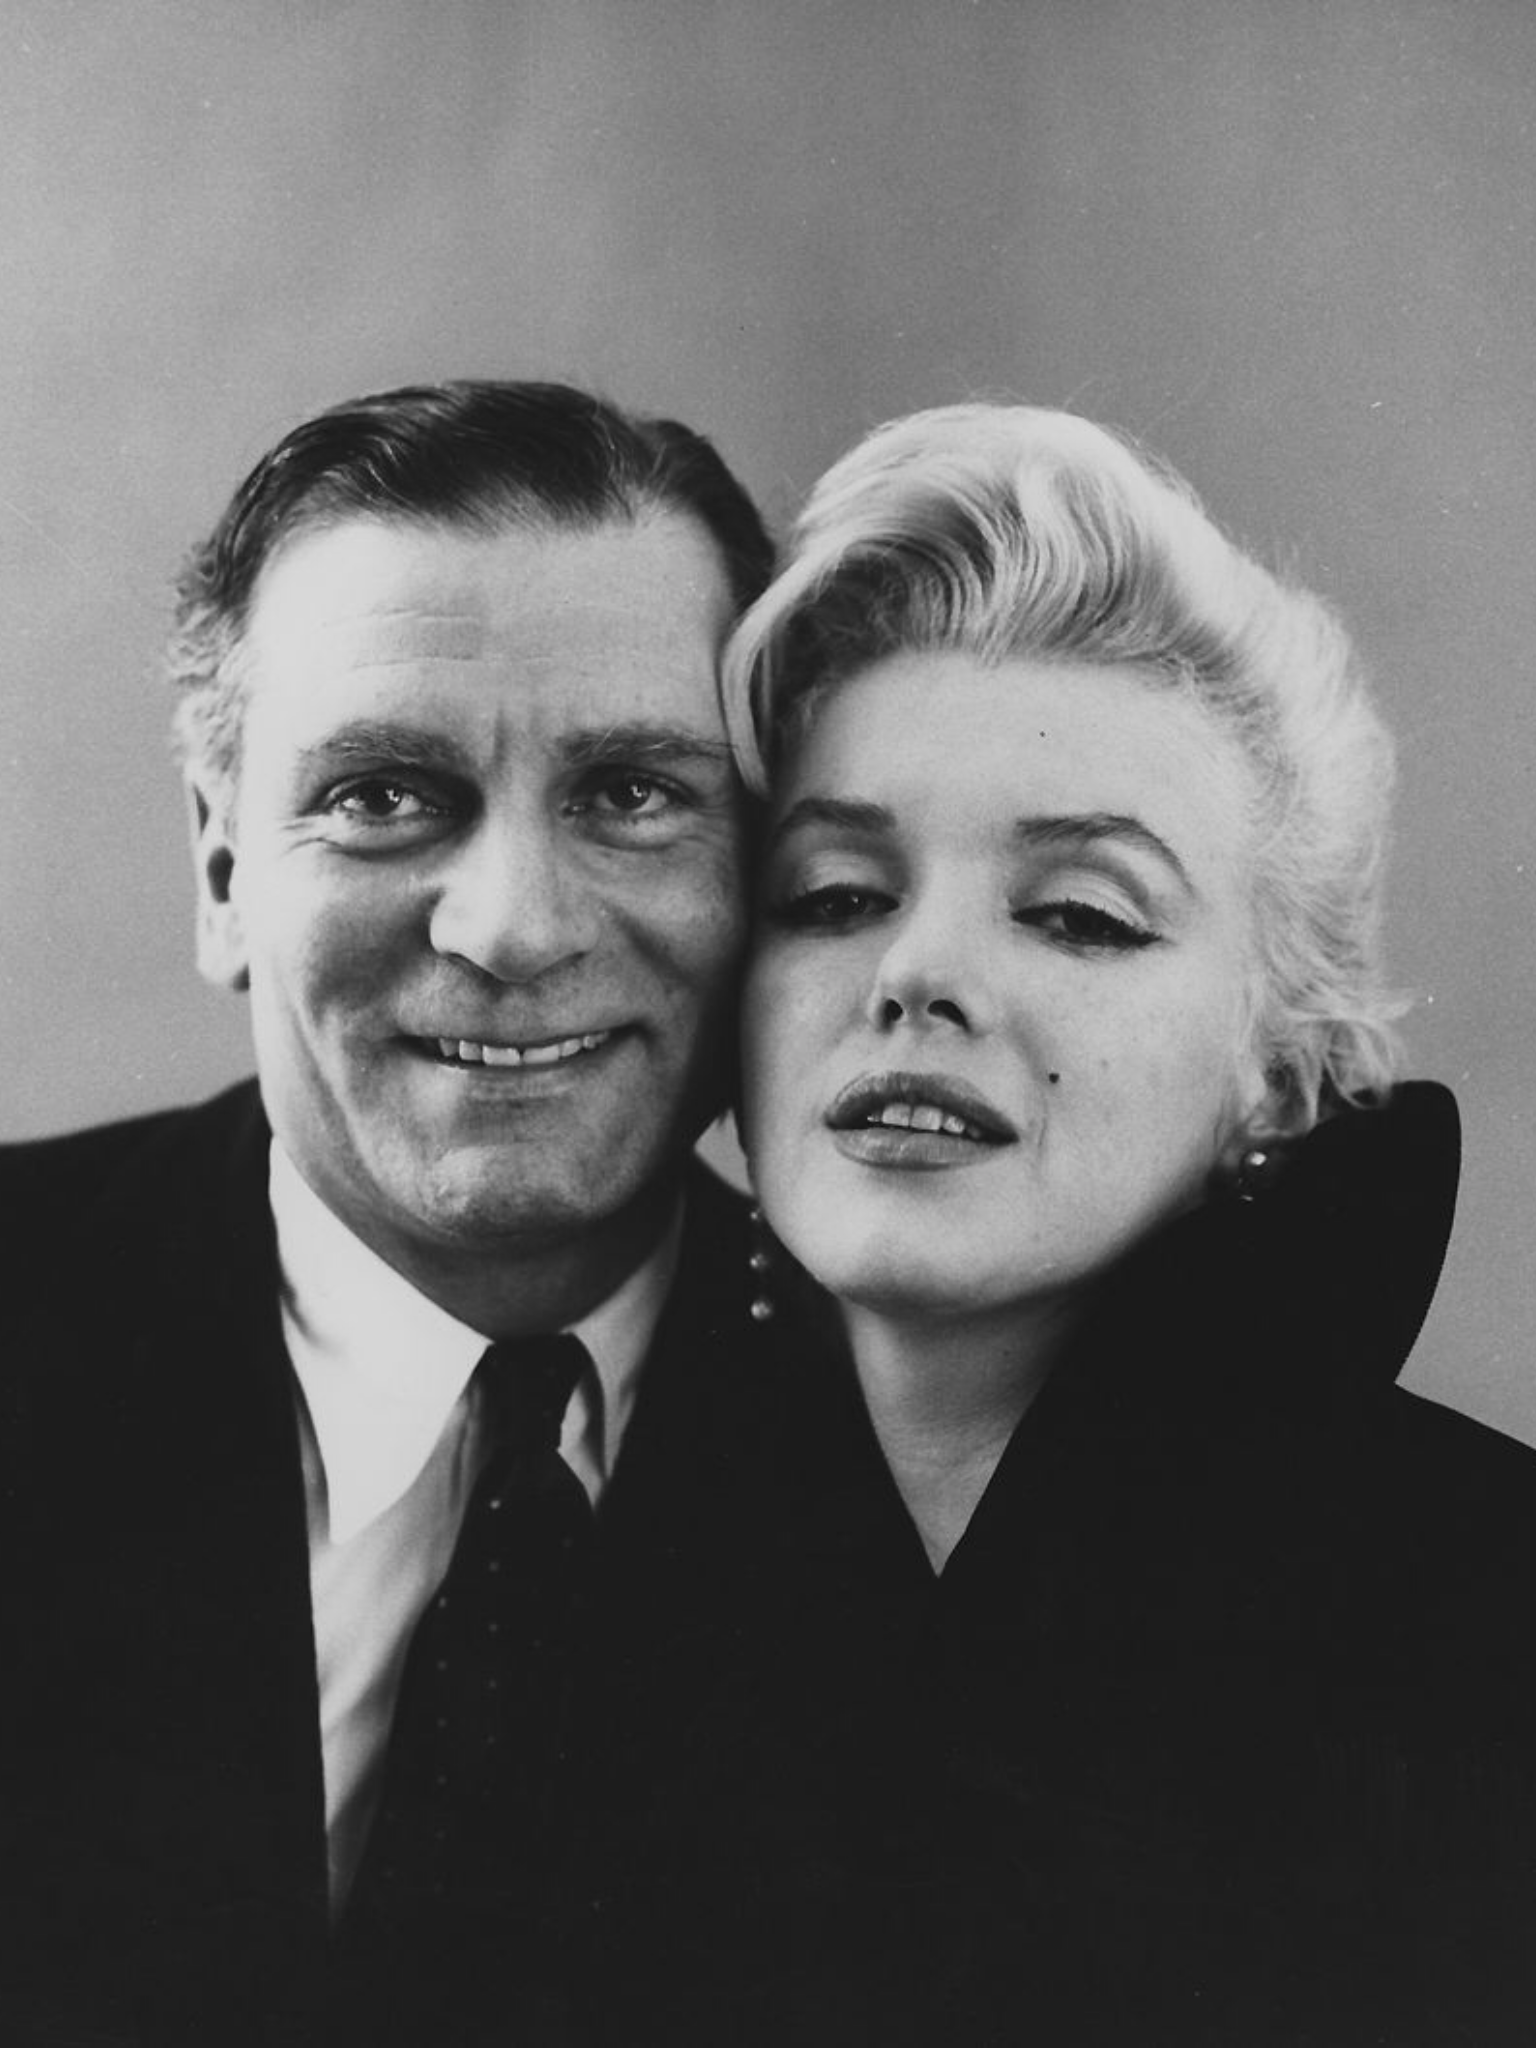 Laurence Olivier and Marilyn Monroe photographed by Milton H. Greene